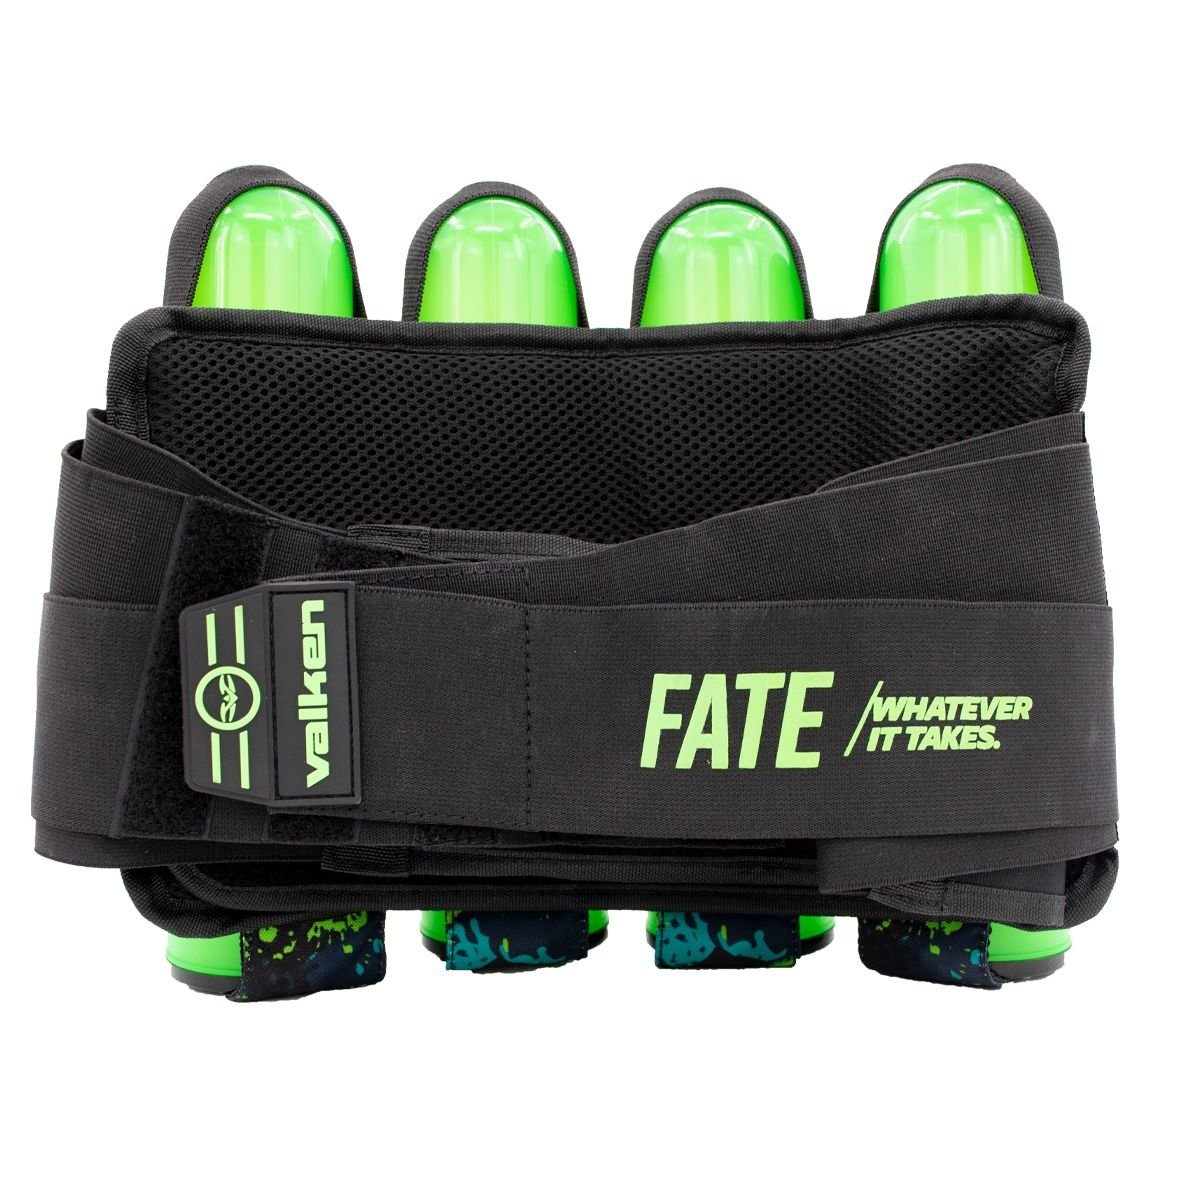 View larger image of Valken Fate GFX 4+3 Paintball Harness - Green Abstract